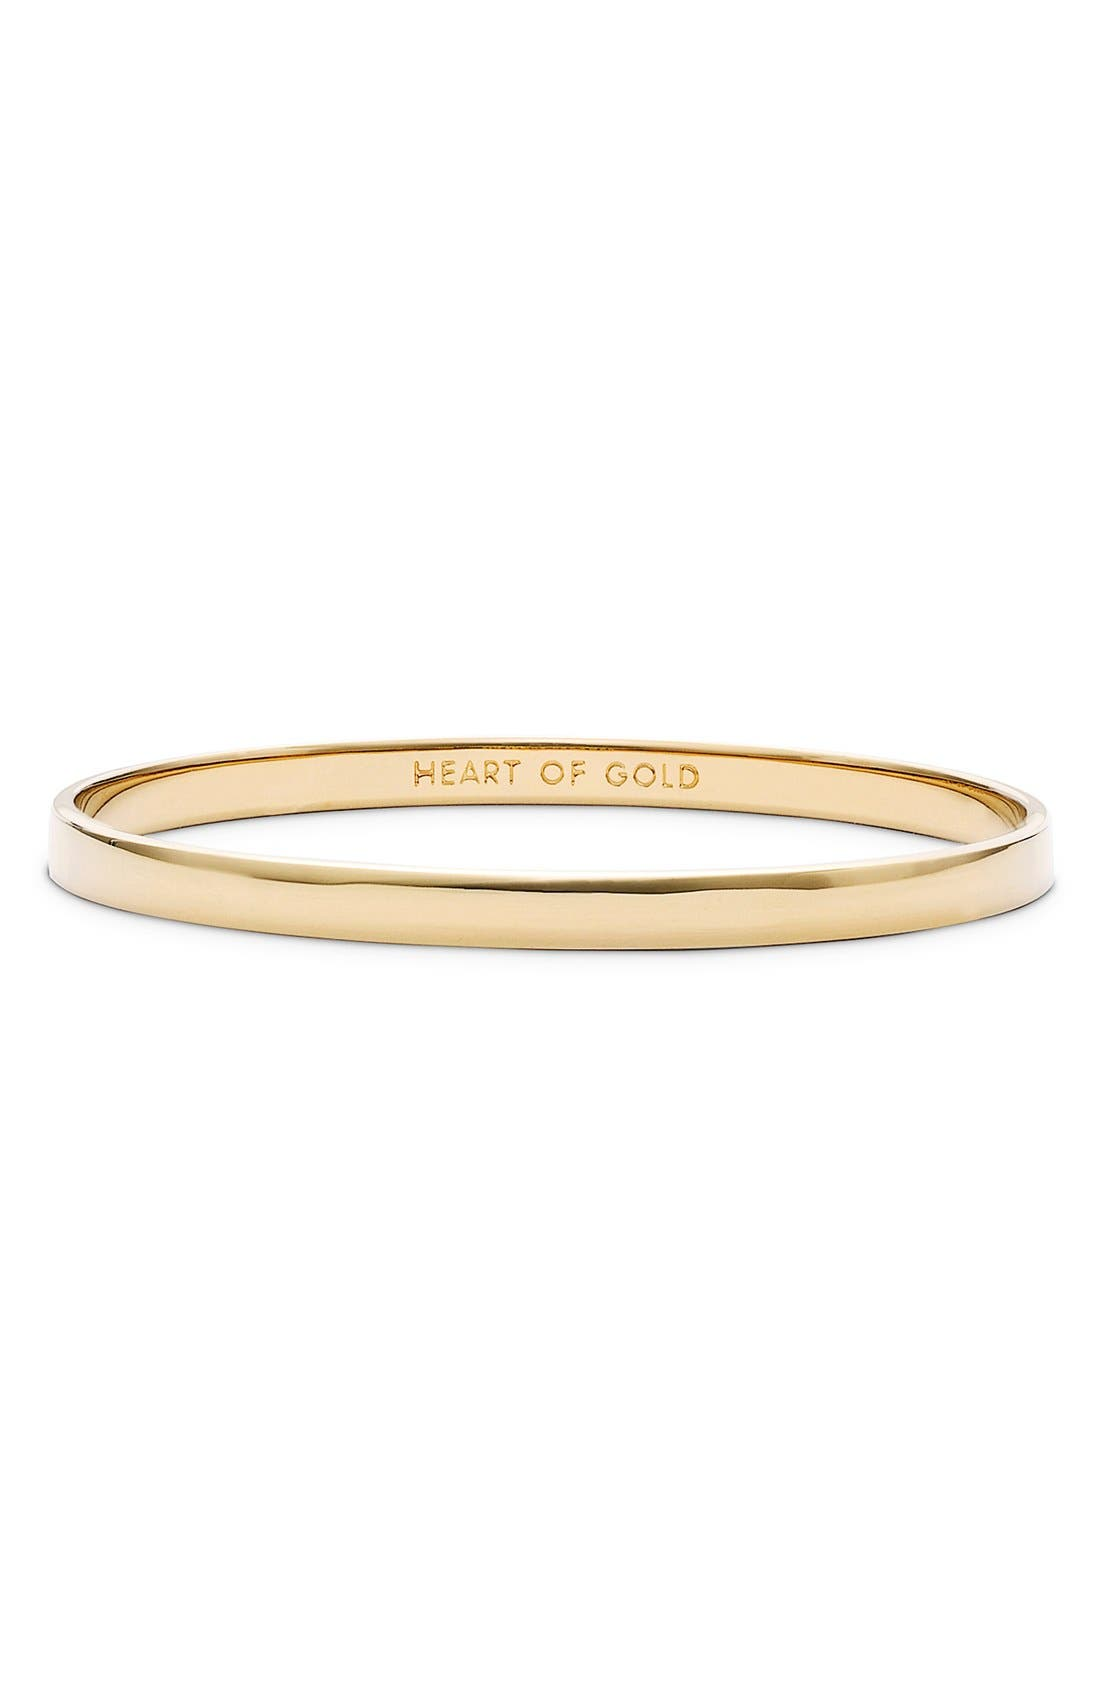 KATE SPADE NEW YORK idiom - heart of gold bangle